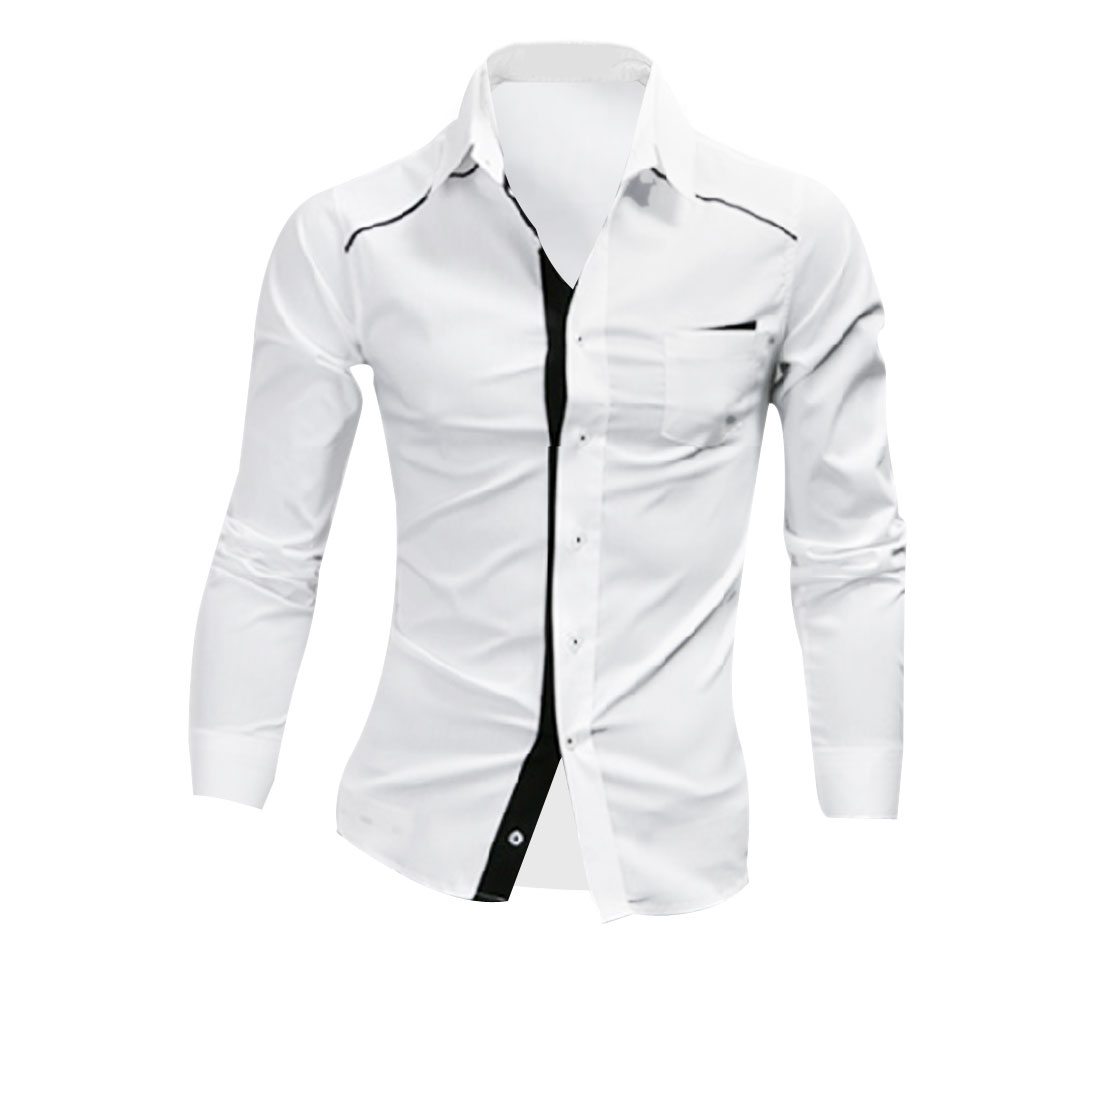 Men's Point Collar Buttoned-front Pockets Casual Fashion White L Shirt